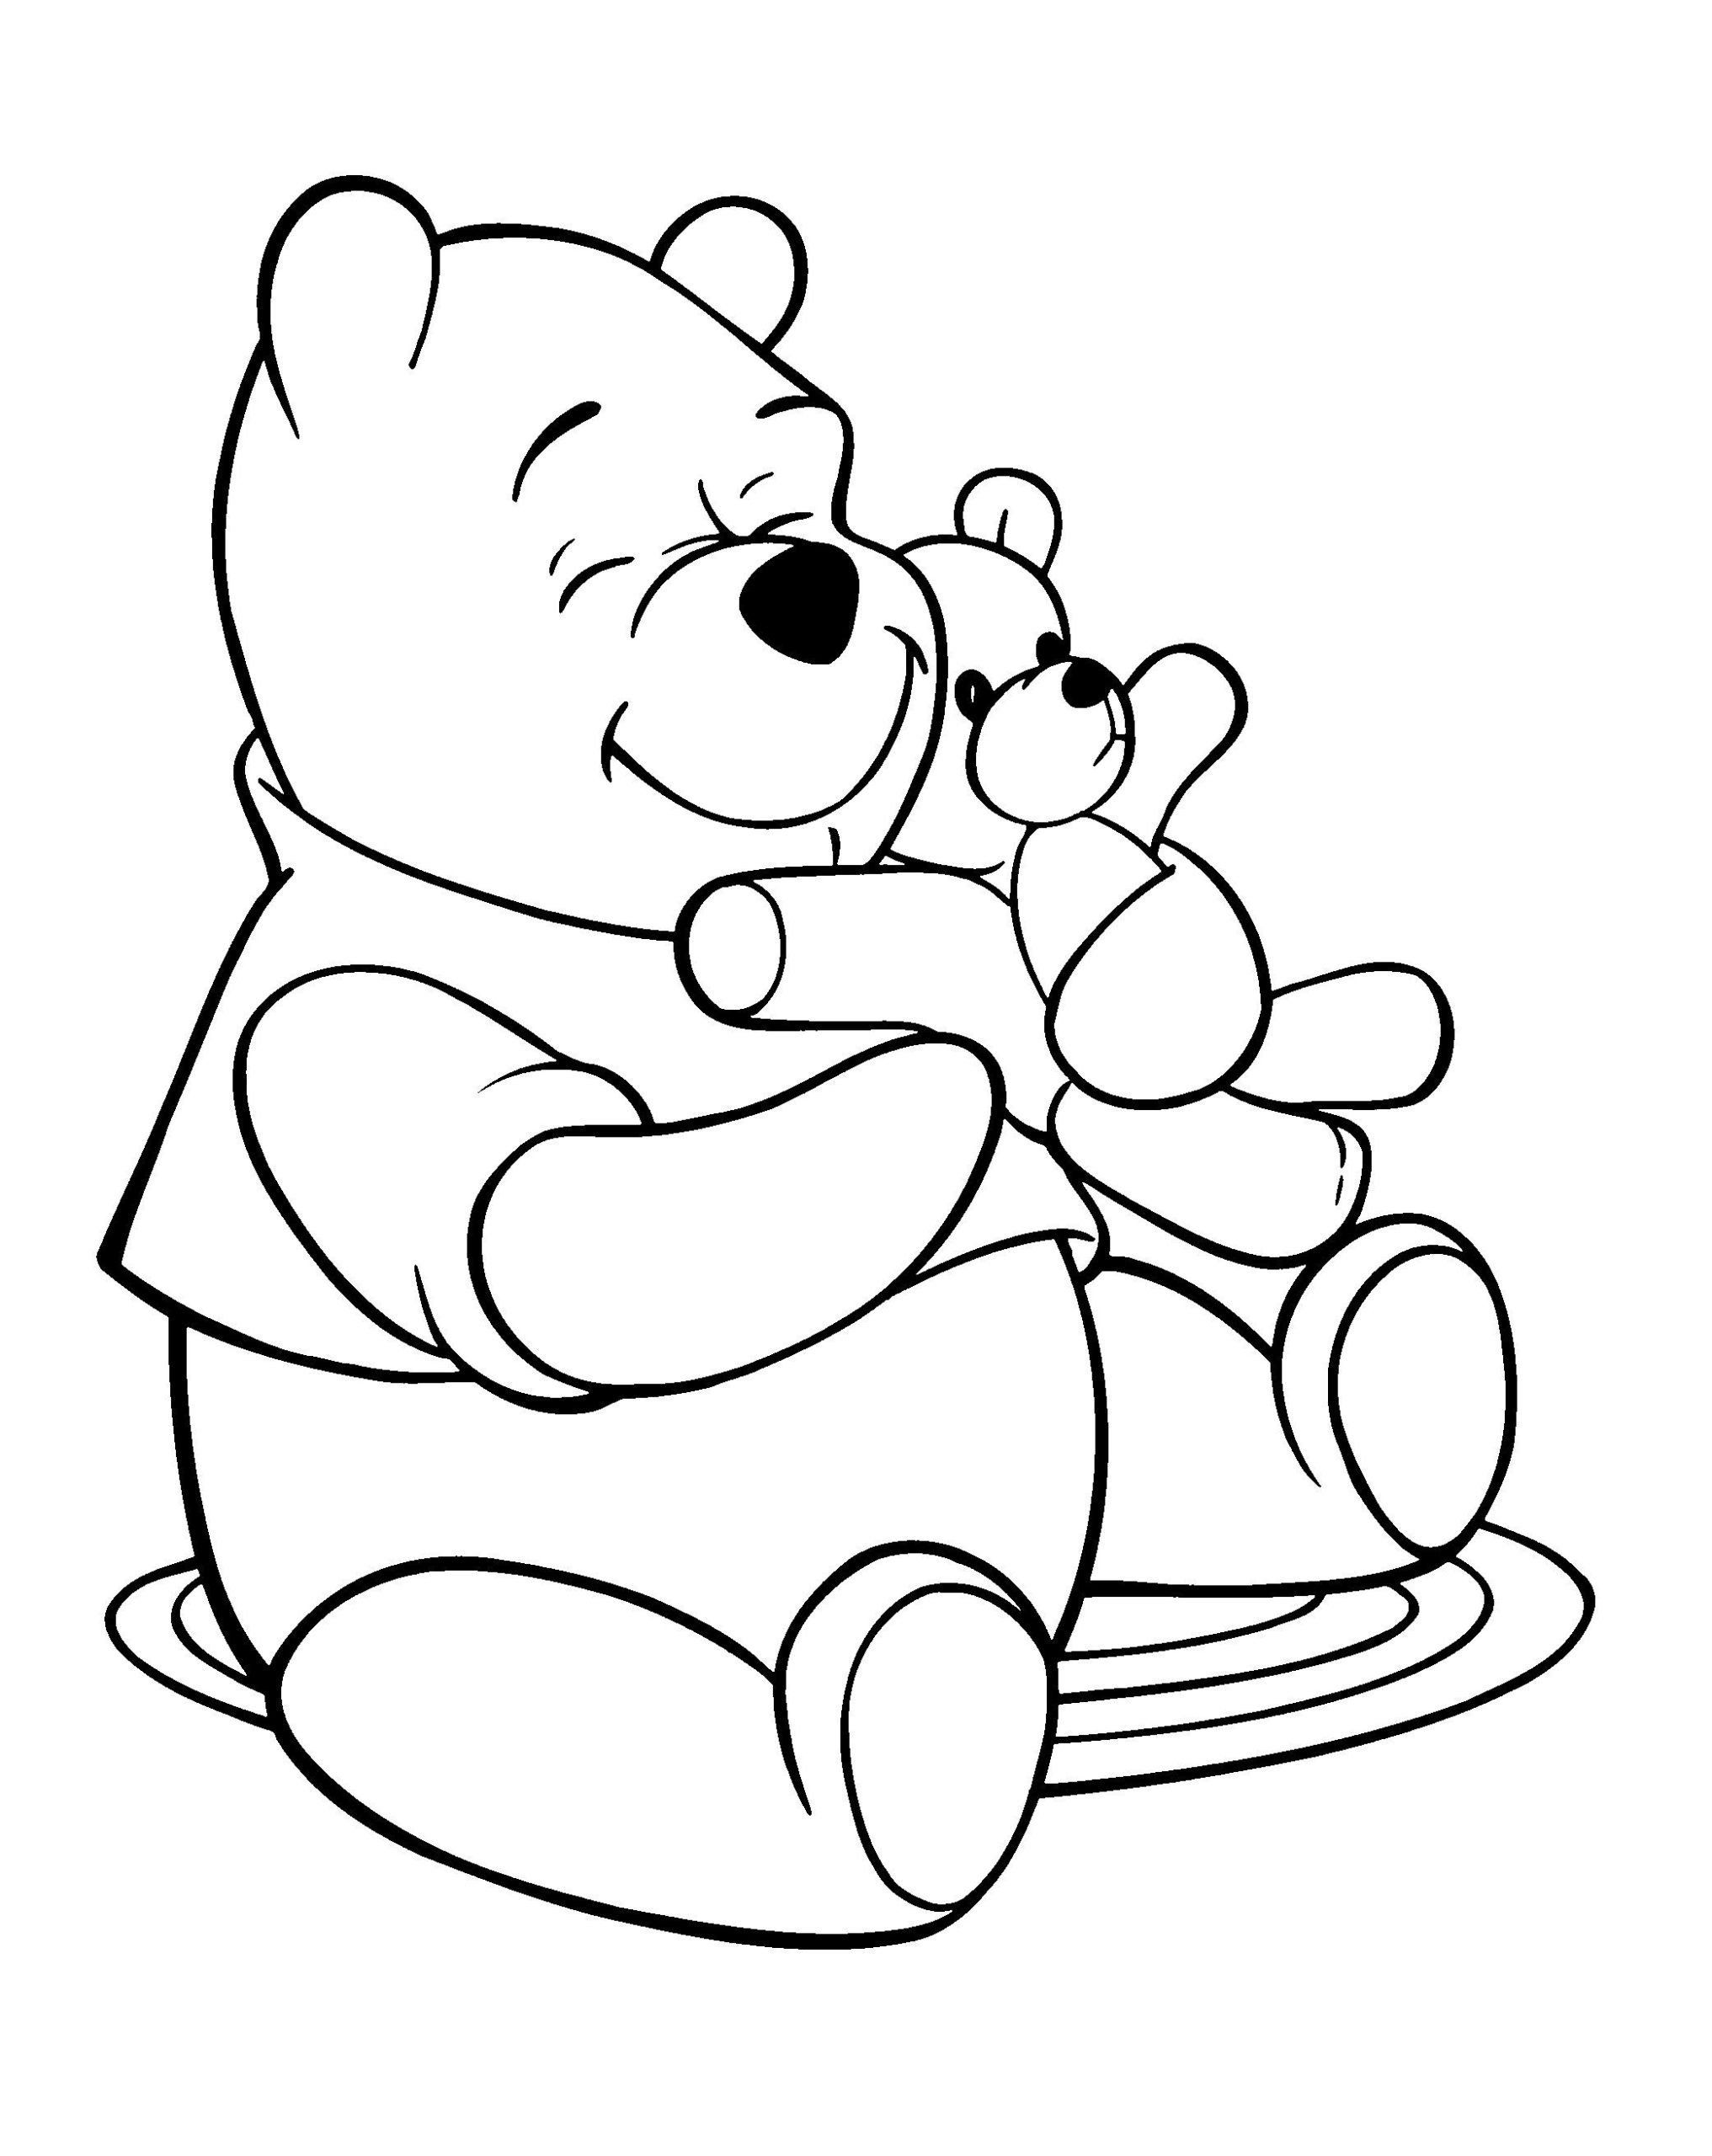 Teddy Bear Coloring Pages Free Printable Coloring Book